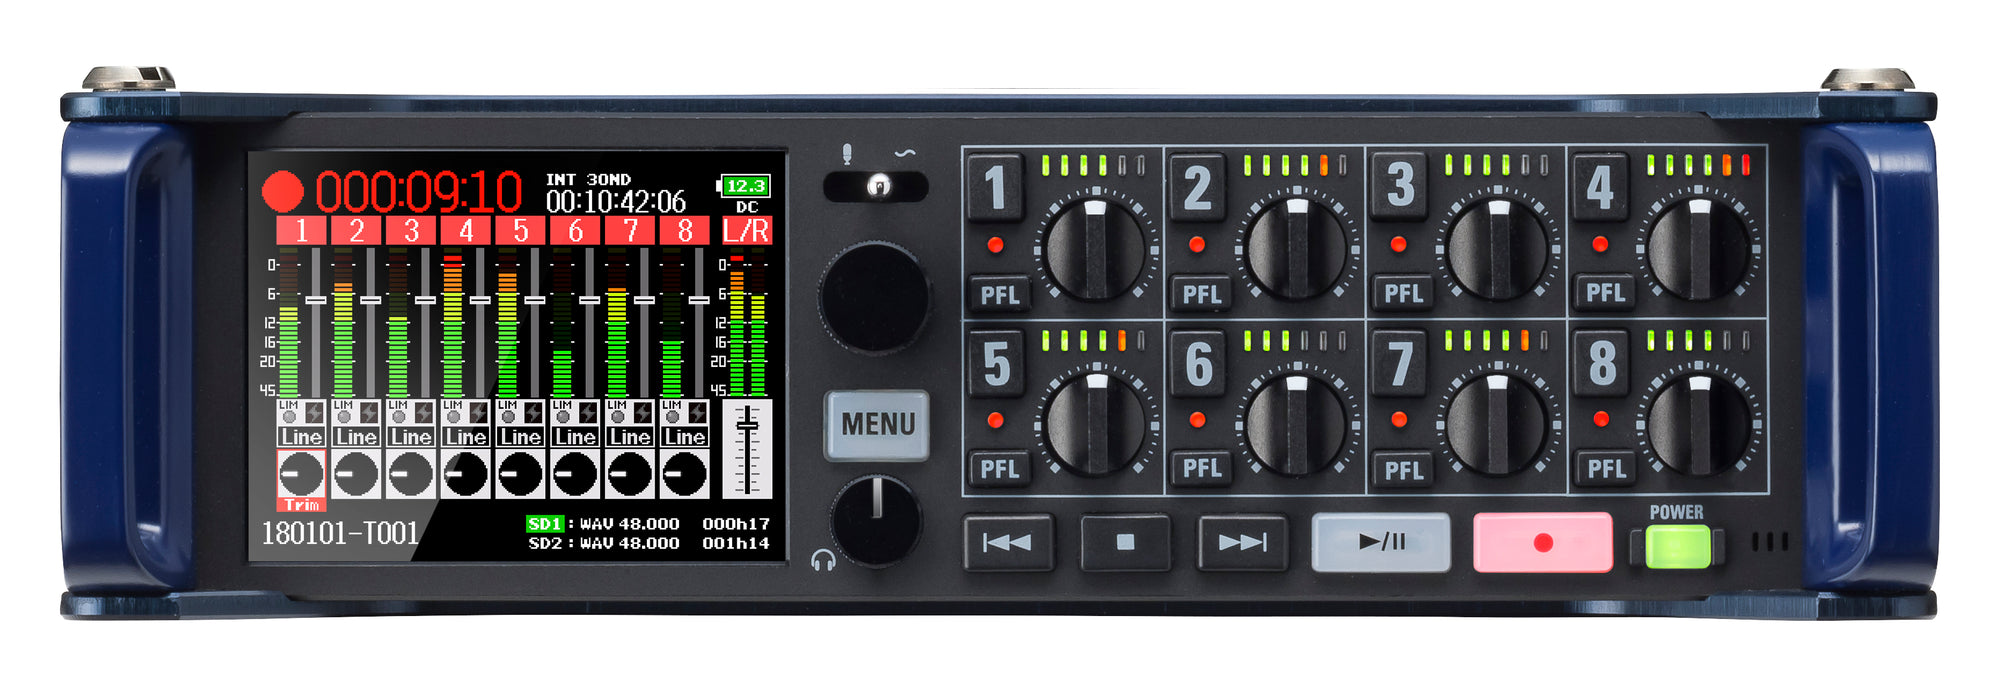 Zoom F8n - Professional Multi-Track Field Recorder - 305broadcast